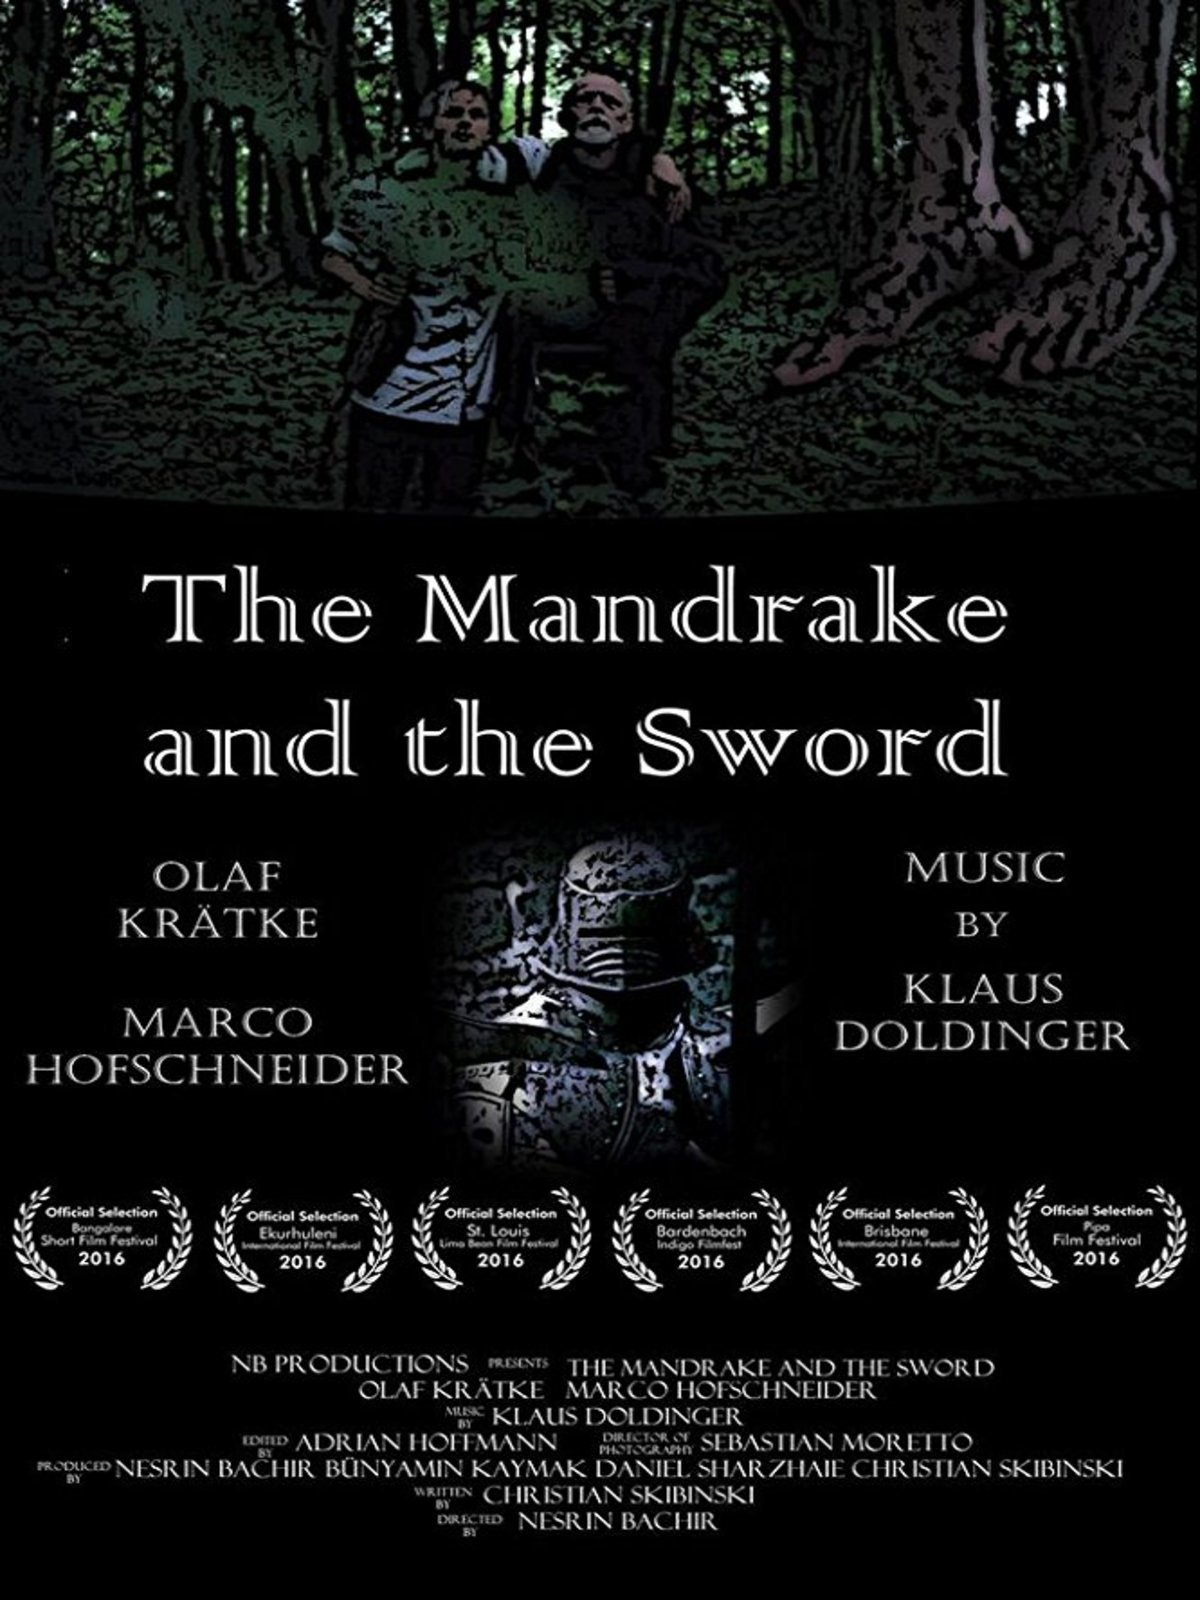 The Mandrake and the Sword